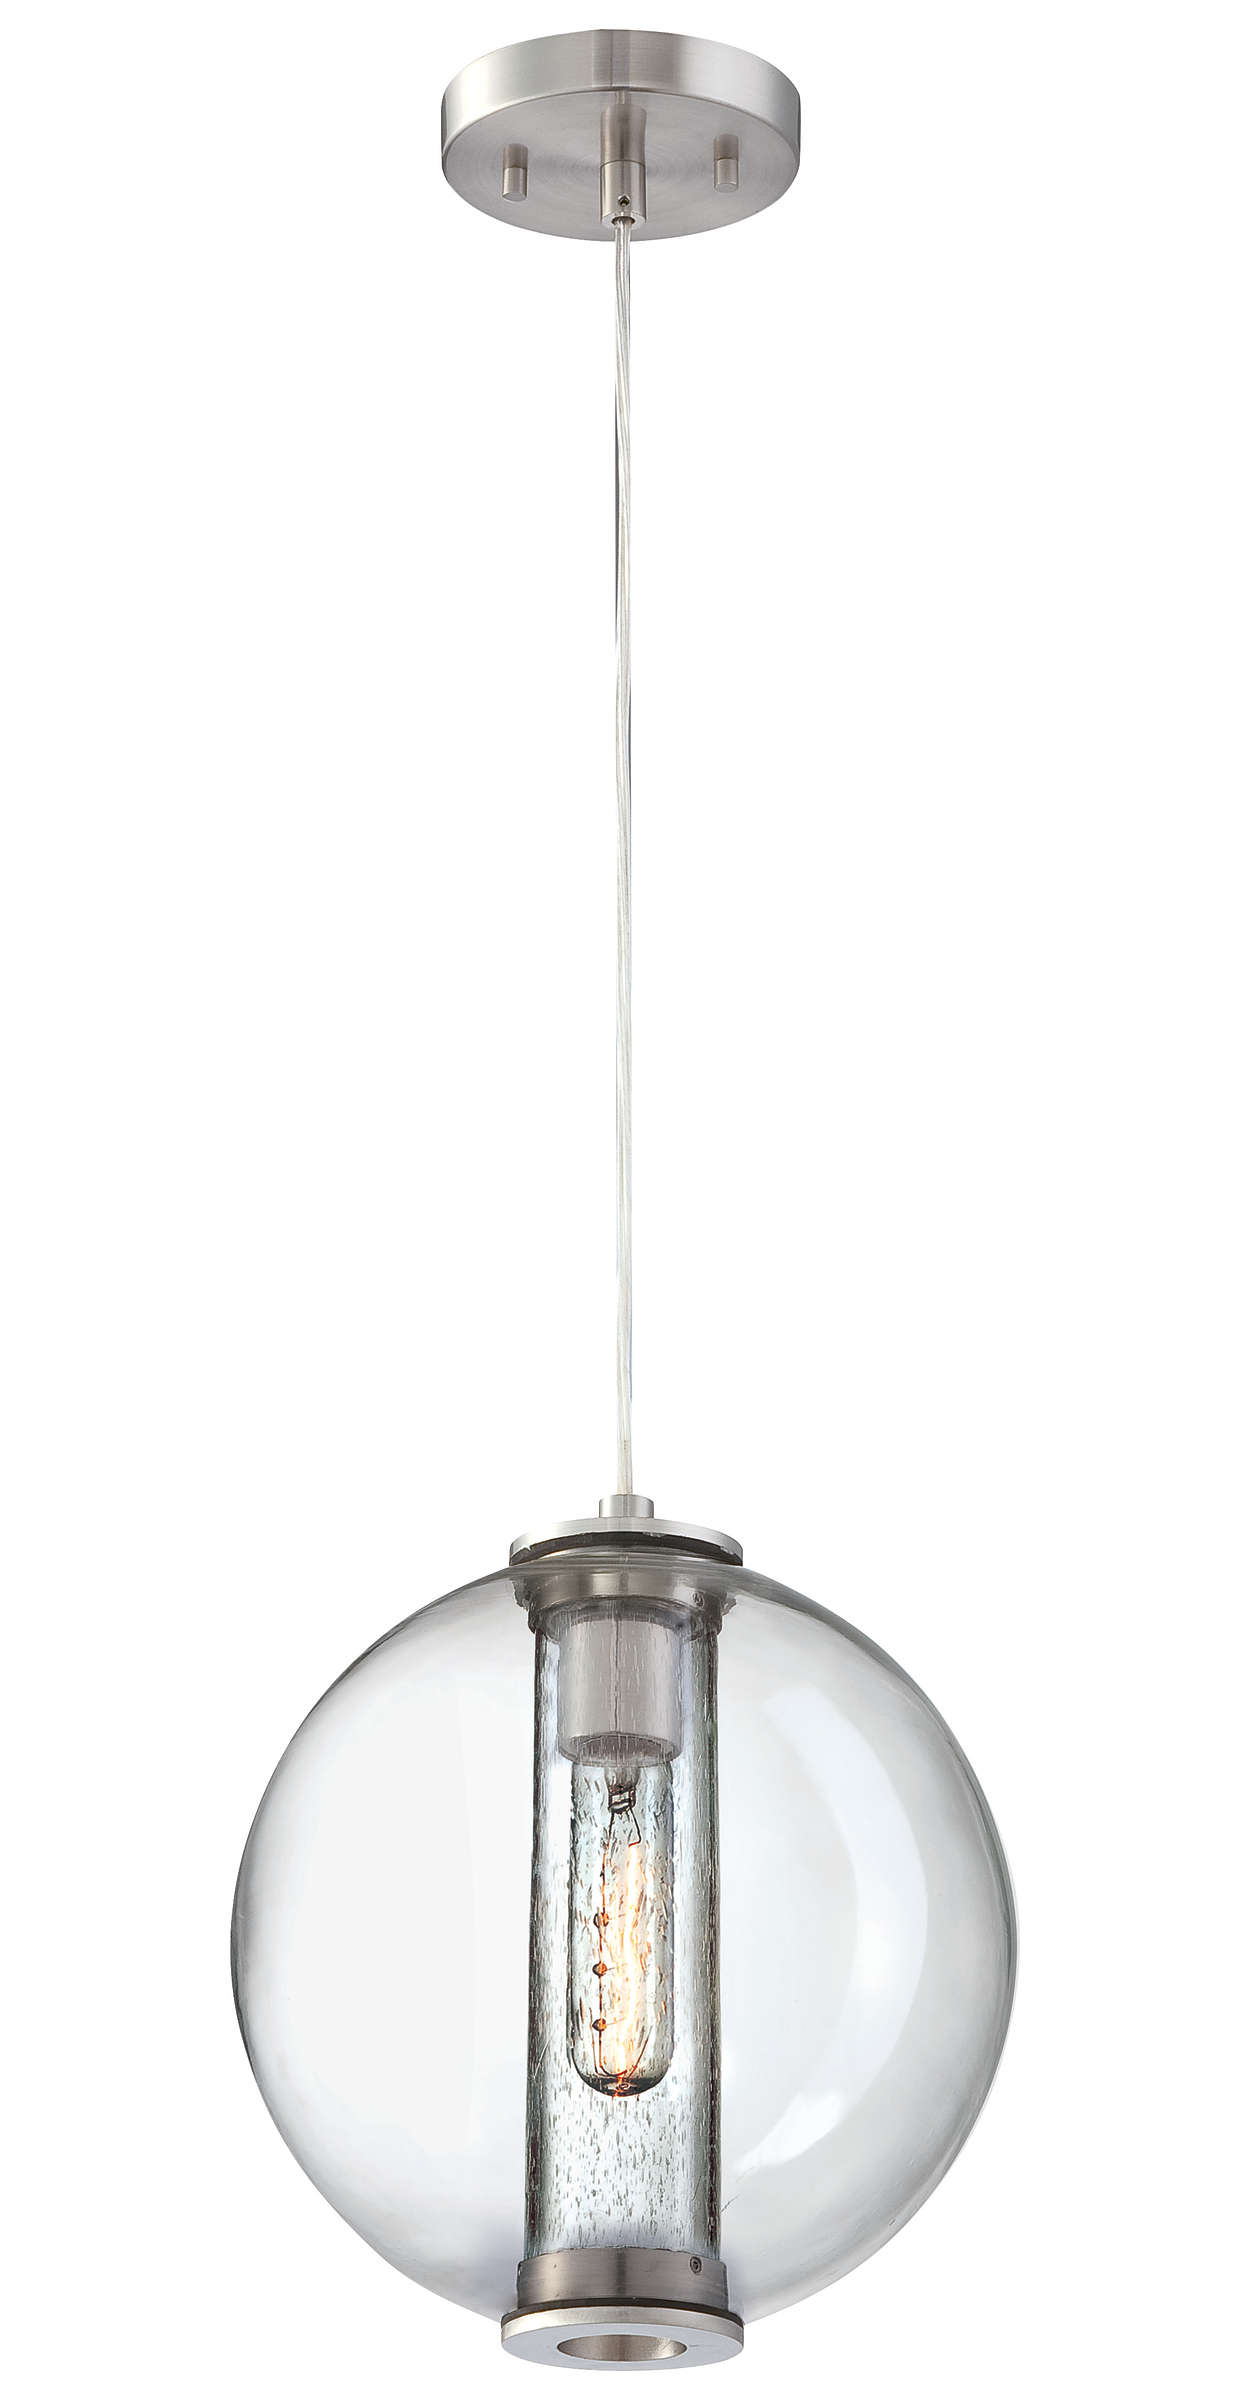 Cosmos 1-light Pendant in Satin Nickel finish